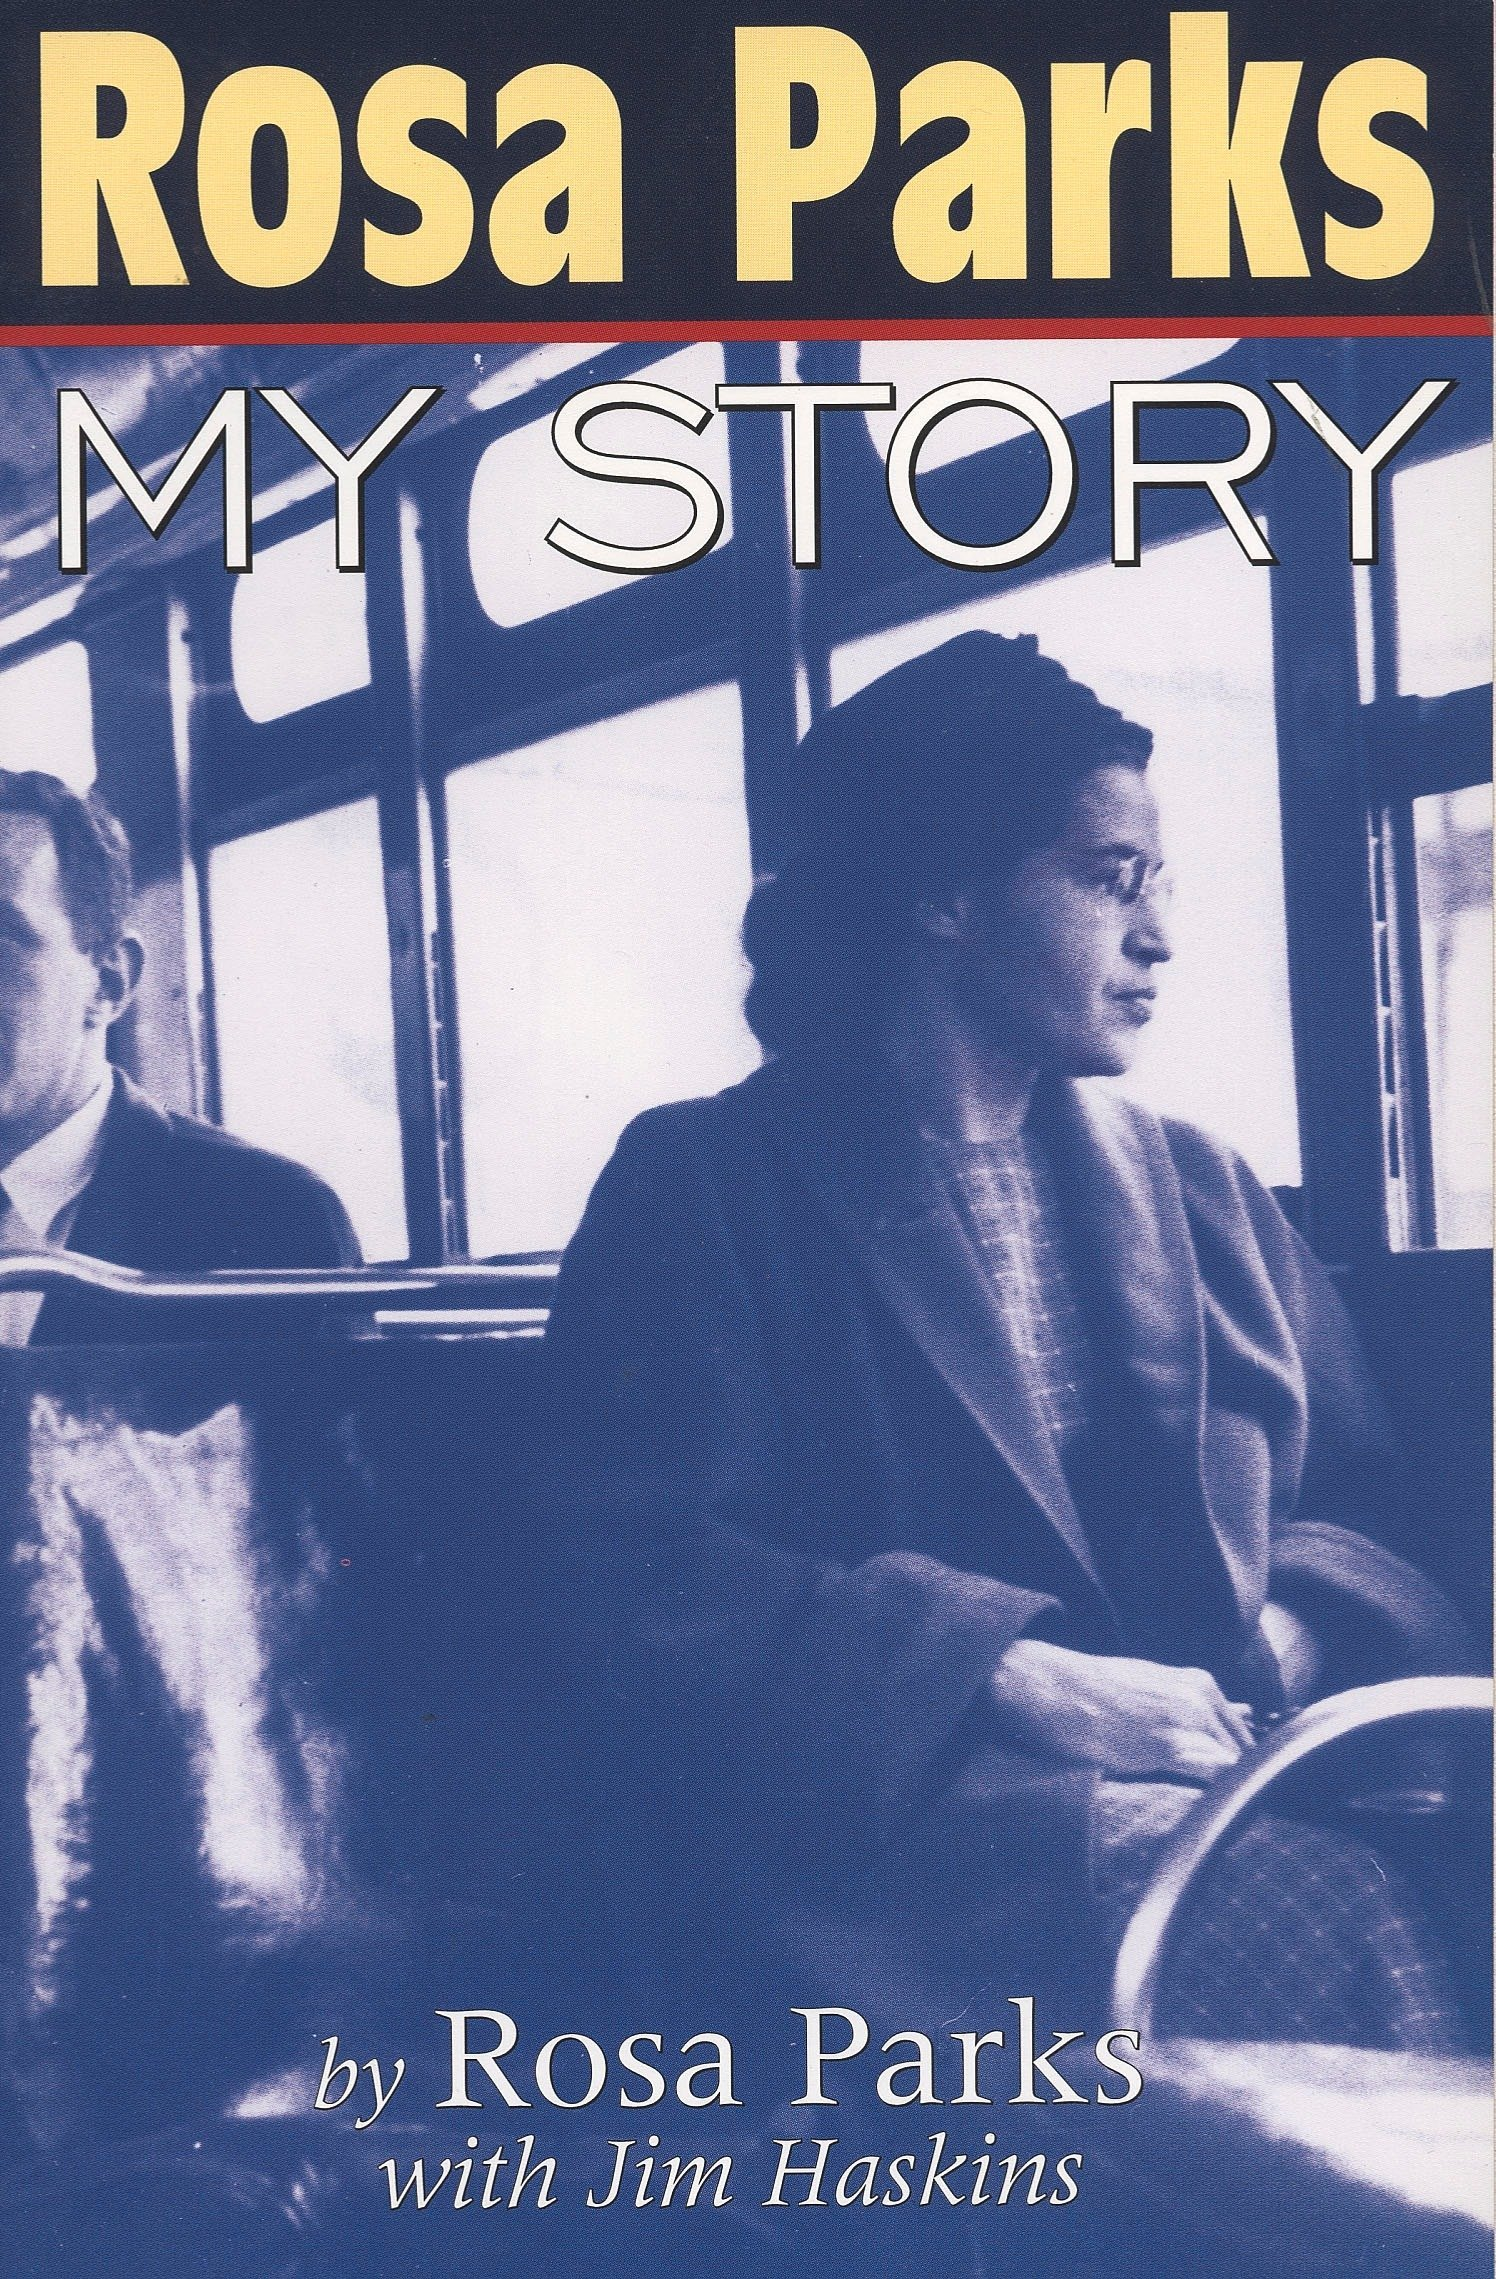 Image result for book cover rosa parks